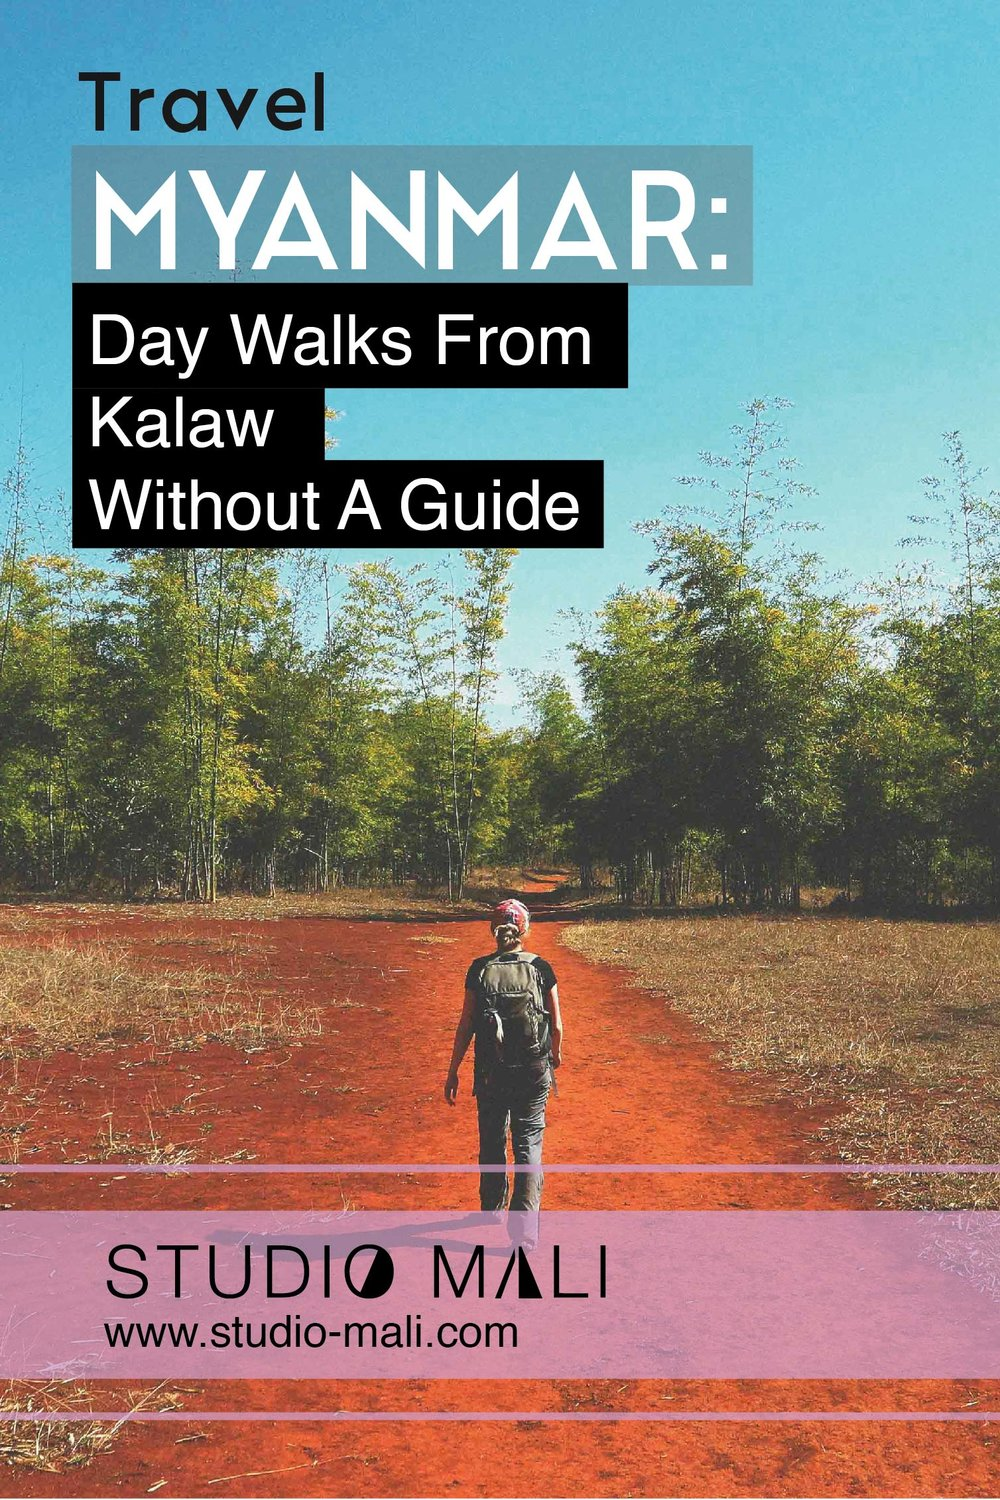 Myanmar: Day Walks From Kalaw Without A Guide, By Studio Mali